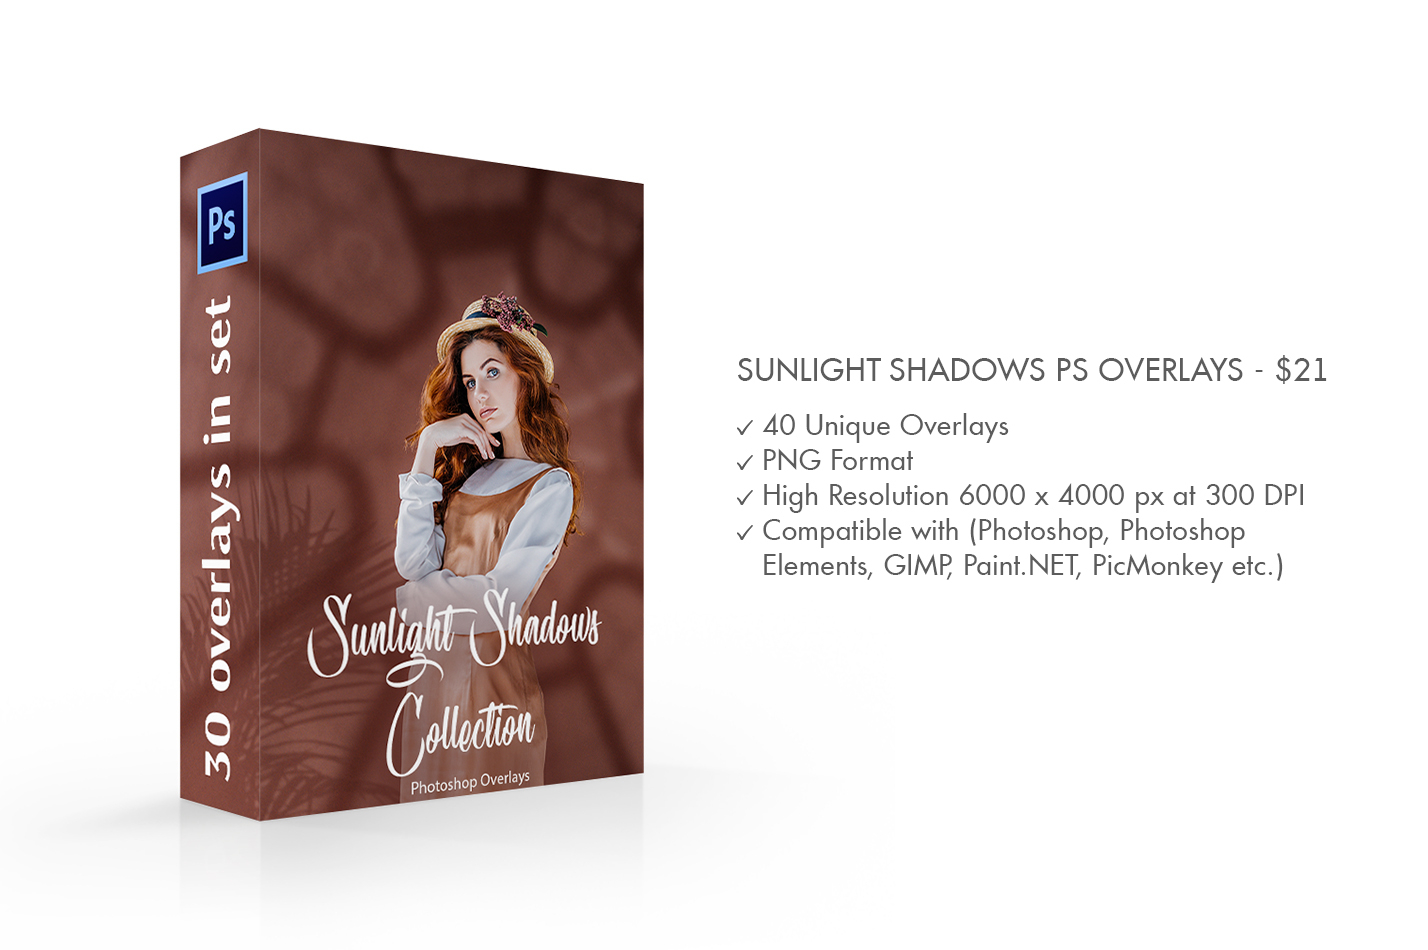 Sunlight Shadows Photoshop Overlays – 40 Unique Overlays in PNG format